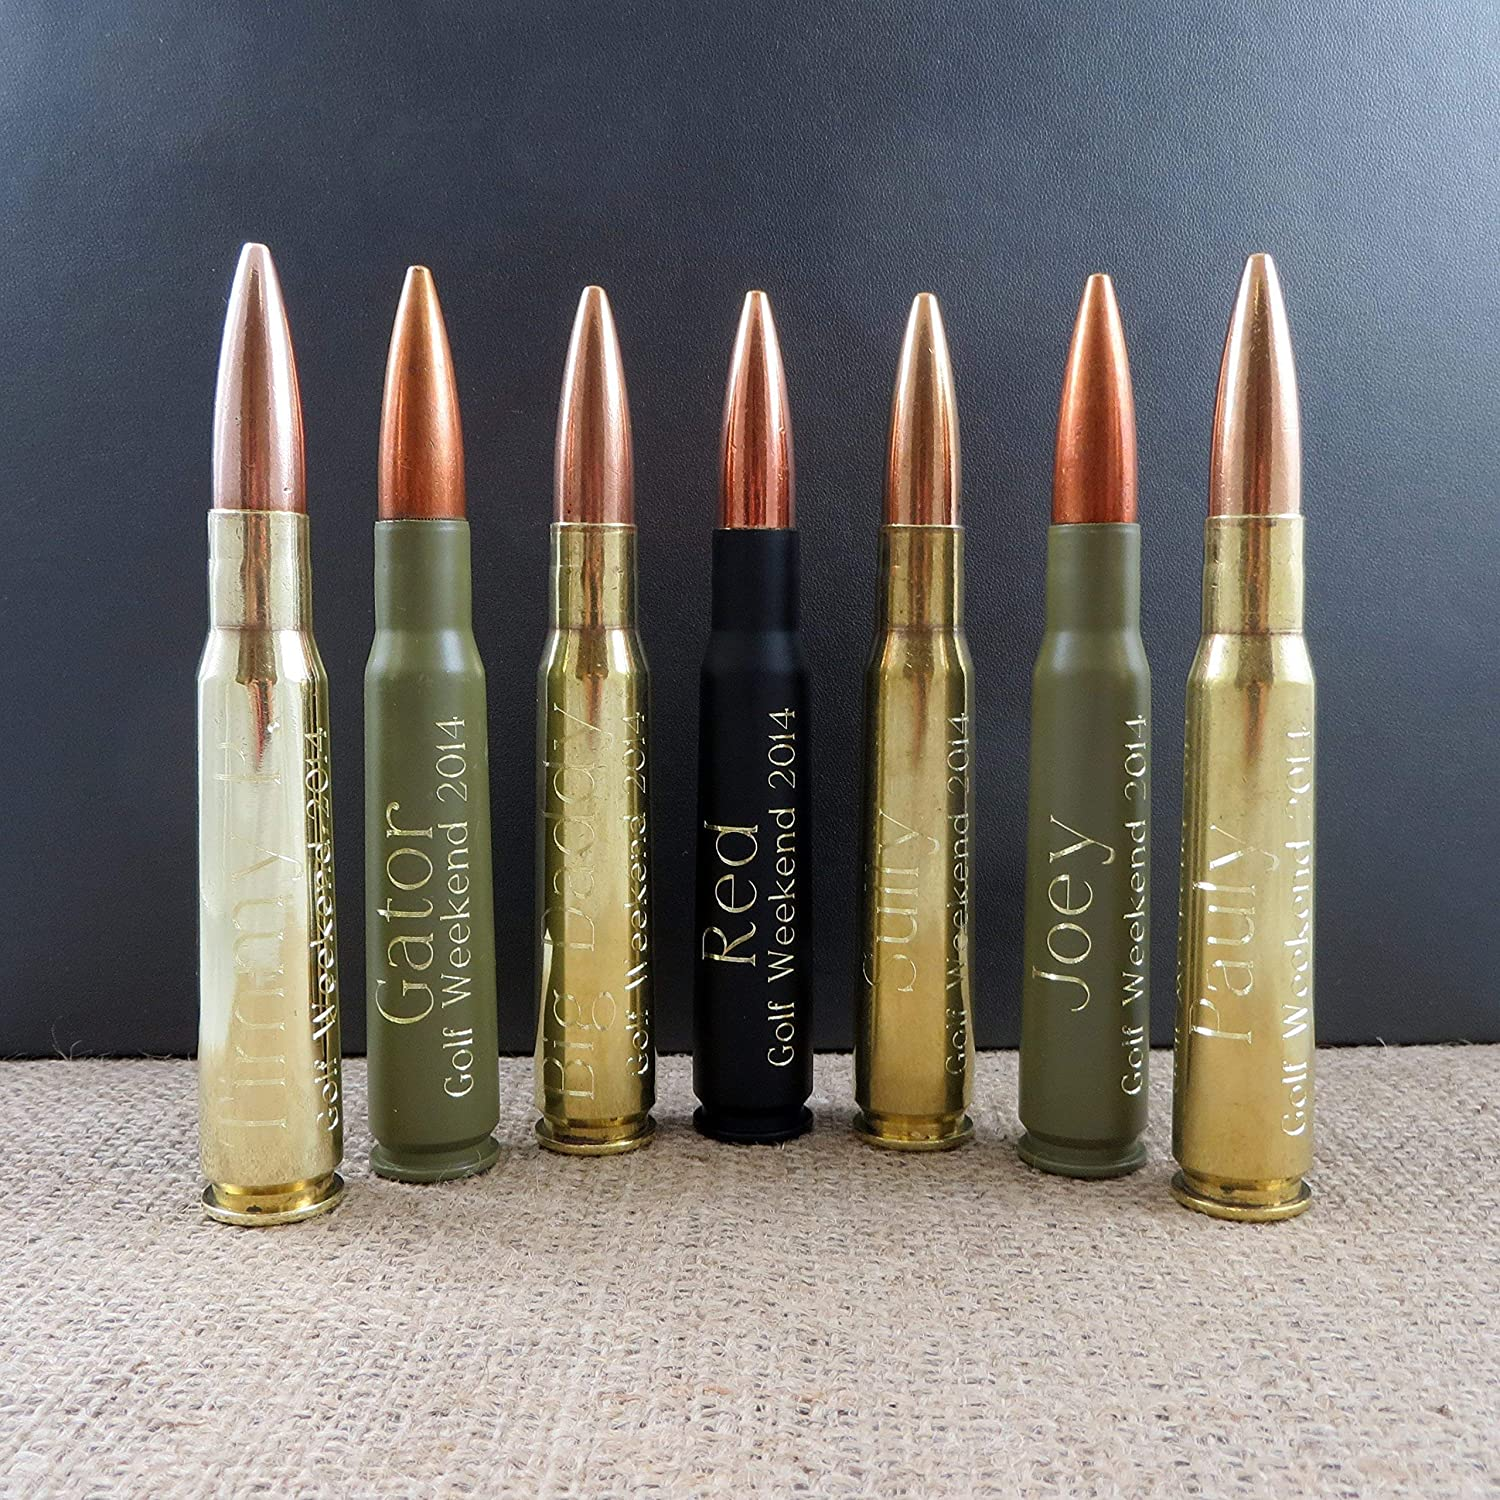 Personalized 50 Caliber Custom Bullet bottle Opener